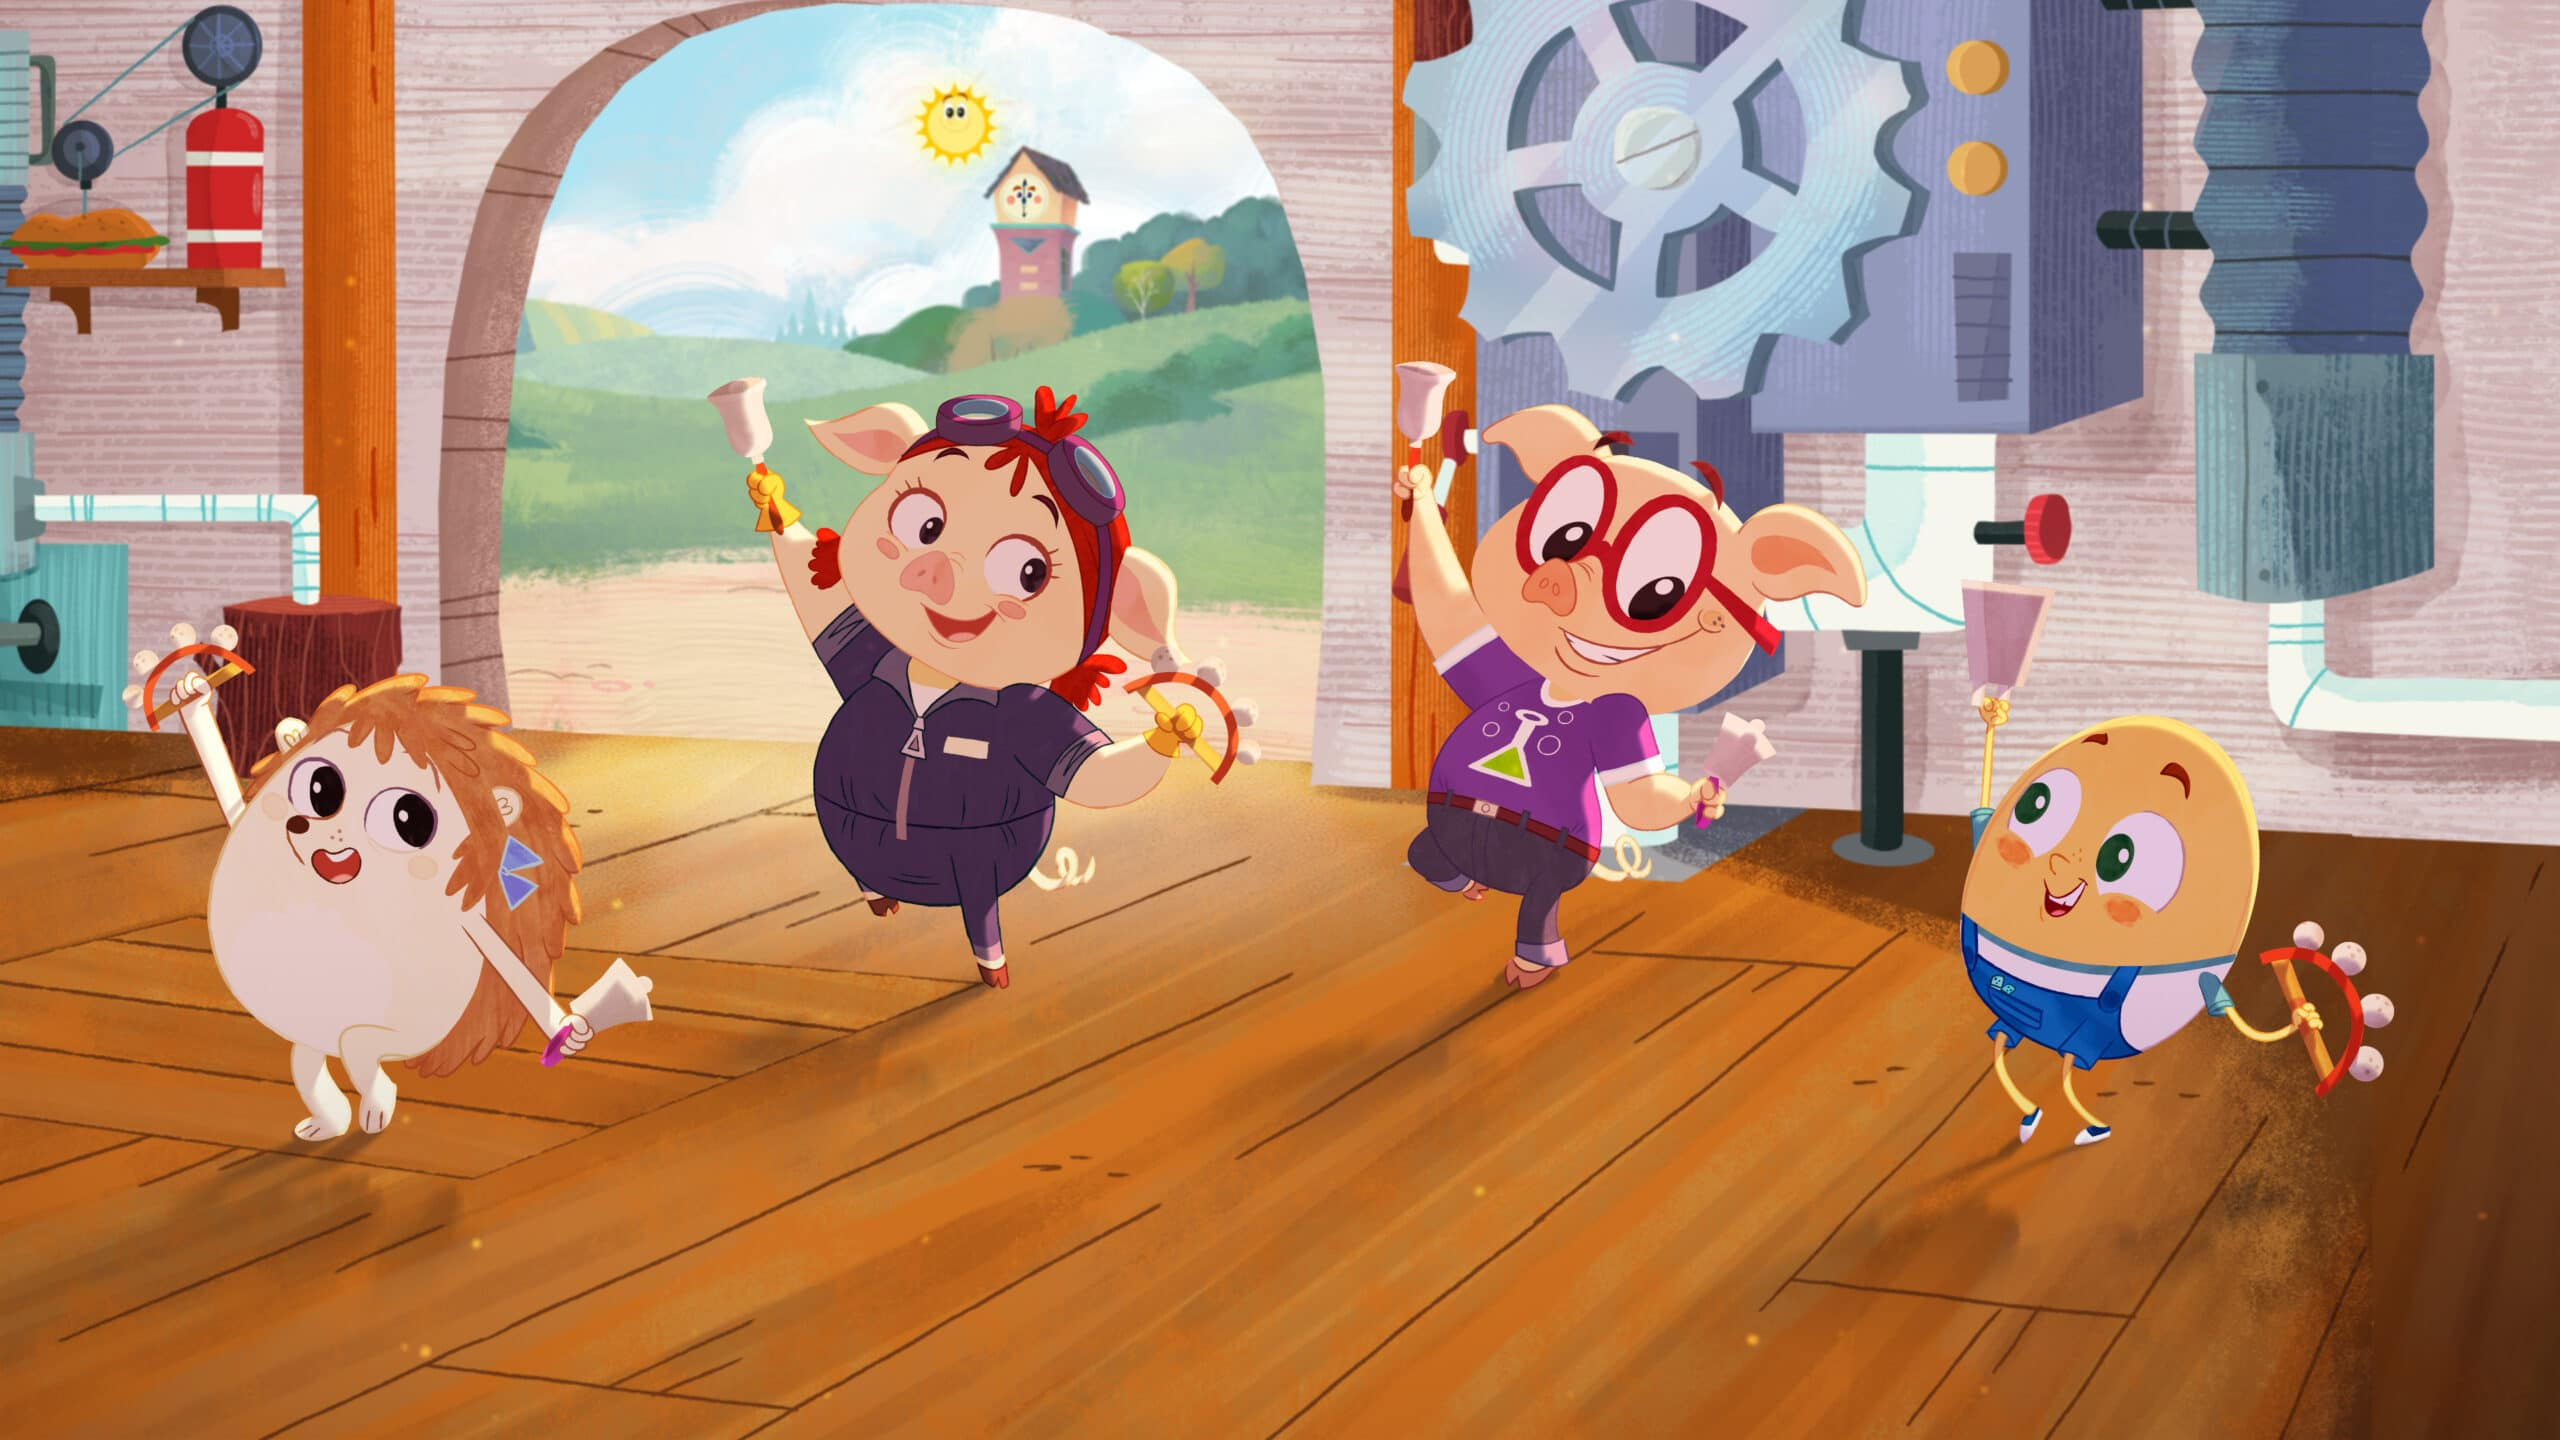 Rhyme Time Town Mary Mary, Jill, Jack, Humpty. Discover more about your favorite characters from the colorful world of Rhyme Time Town. Join Daisy and Cole in 10 all-new singing adventures through the Rhyme Time Town Singalong, coming to Netflix on December 22nd!